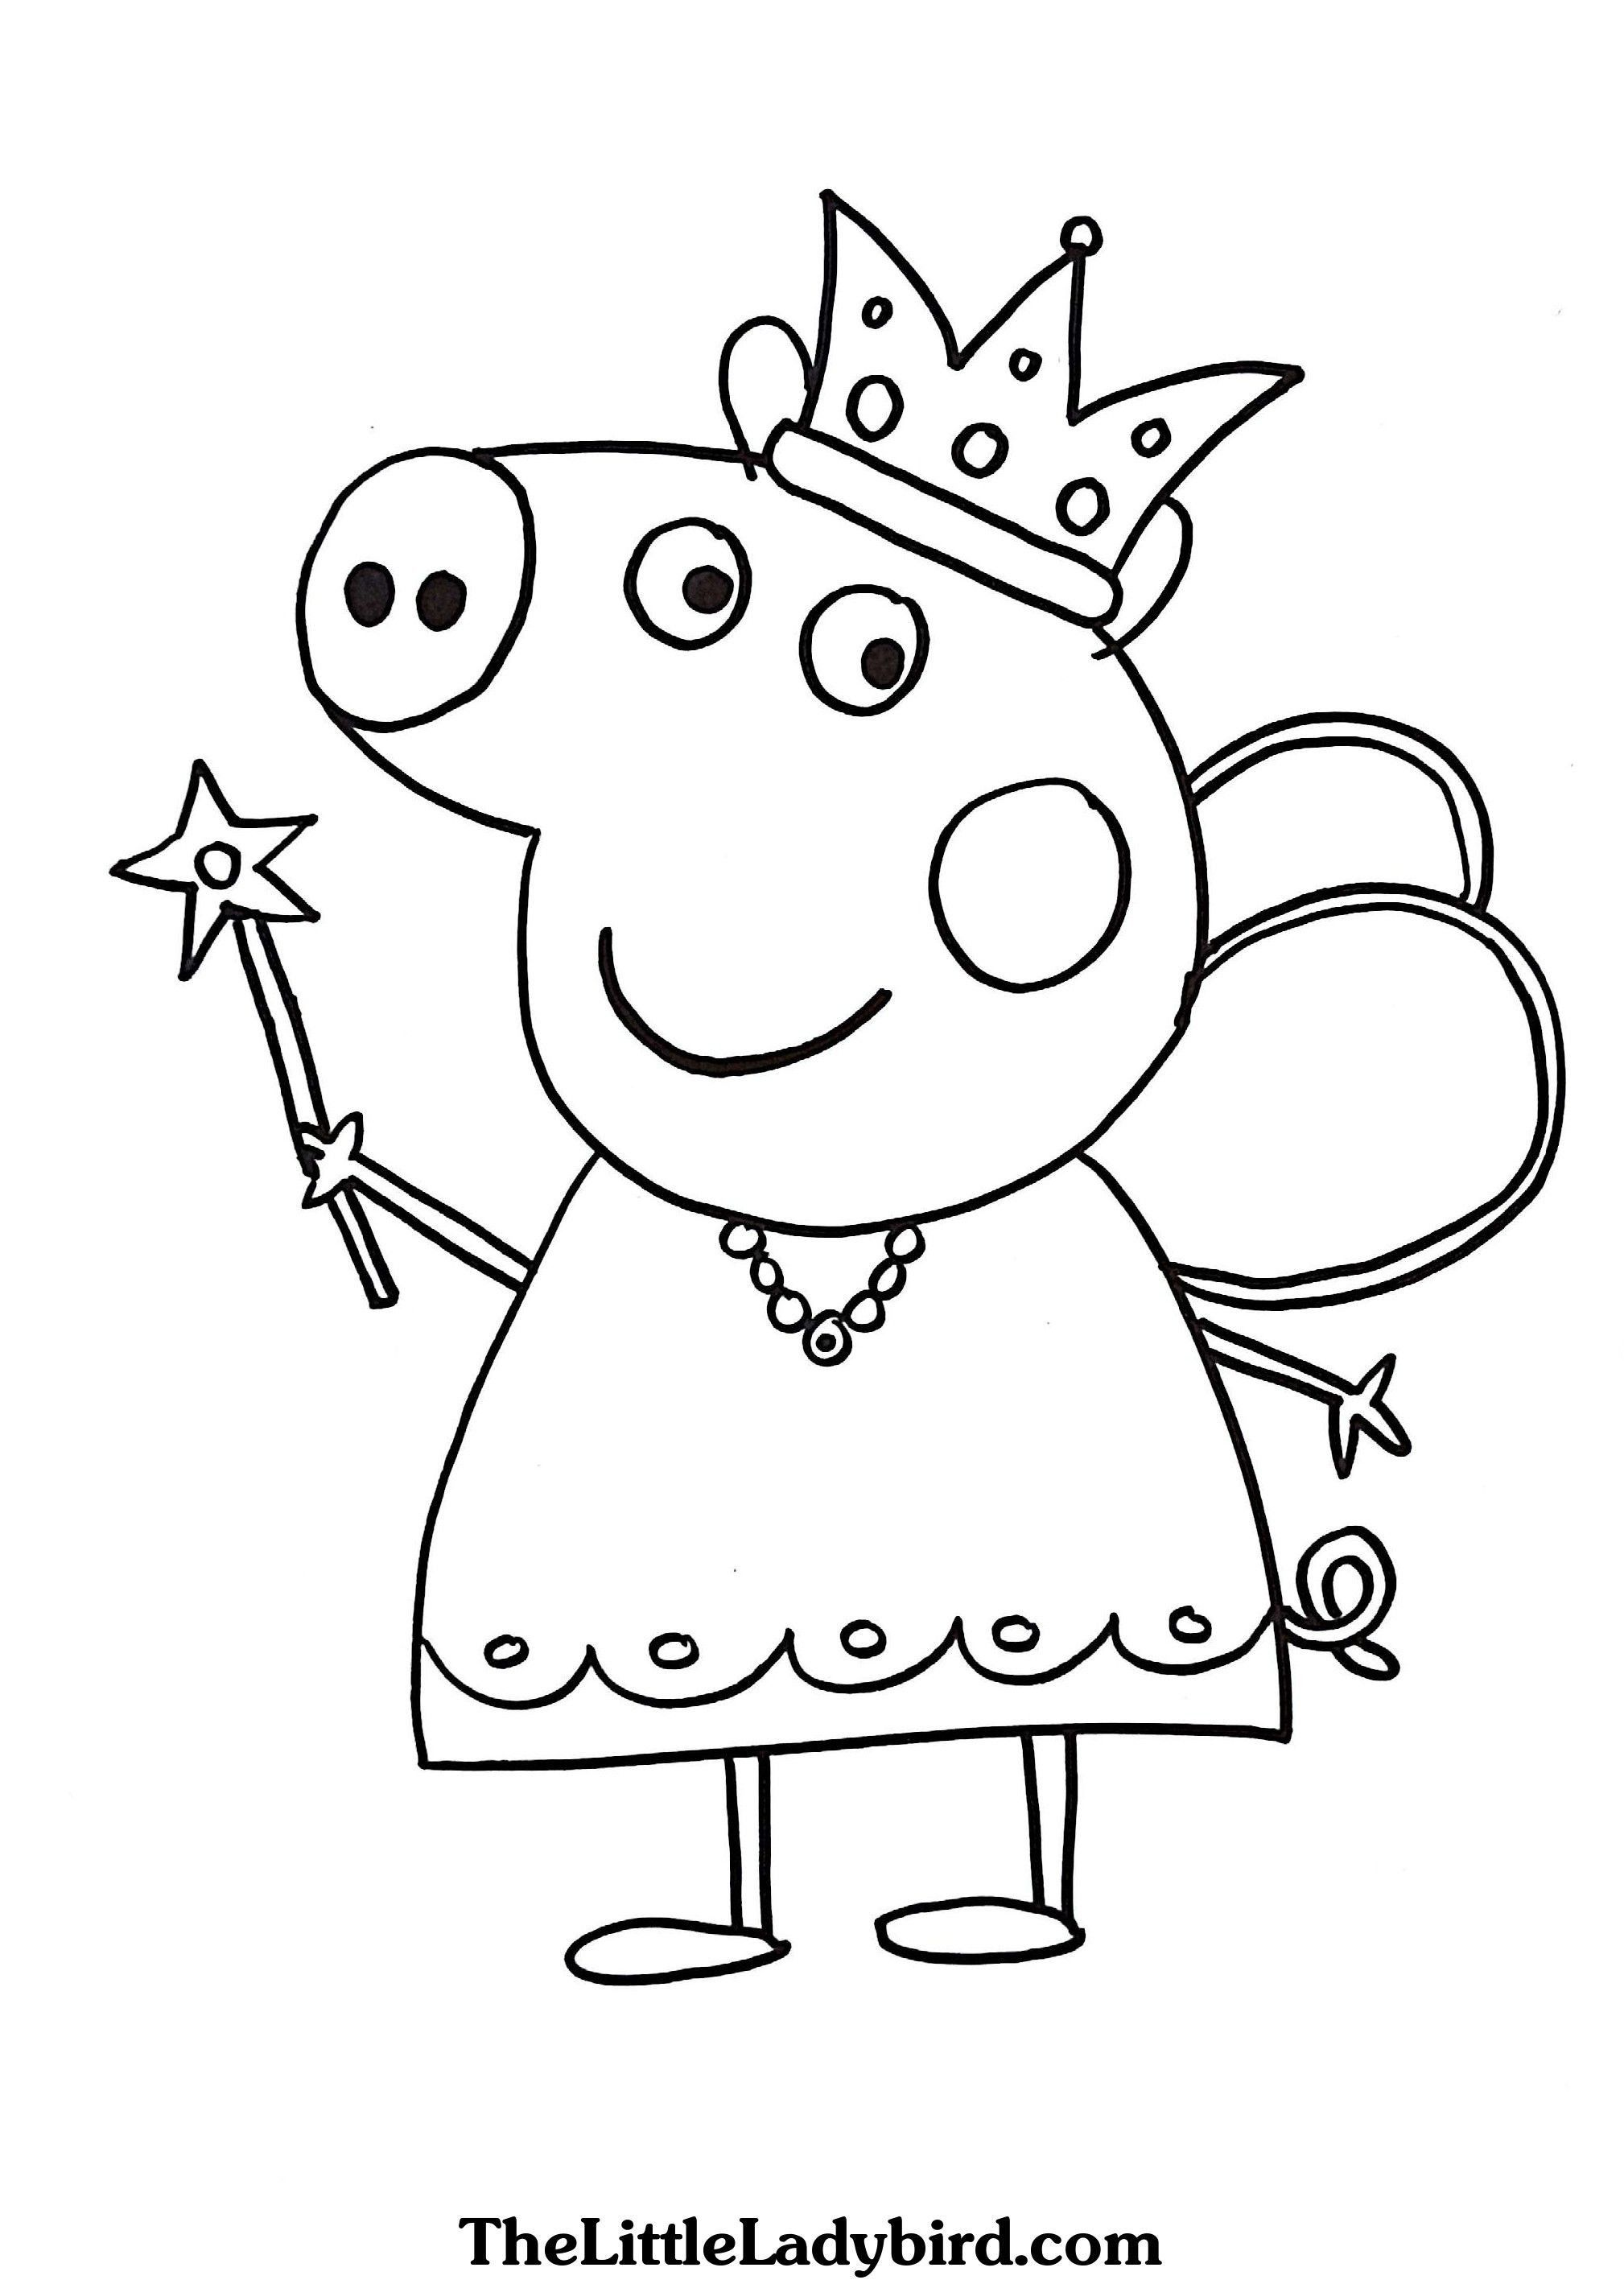 Princess Peppa Pig Coloring Pages